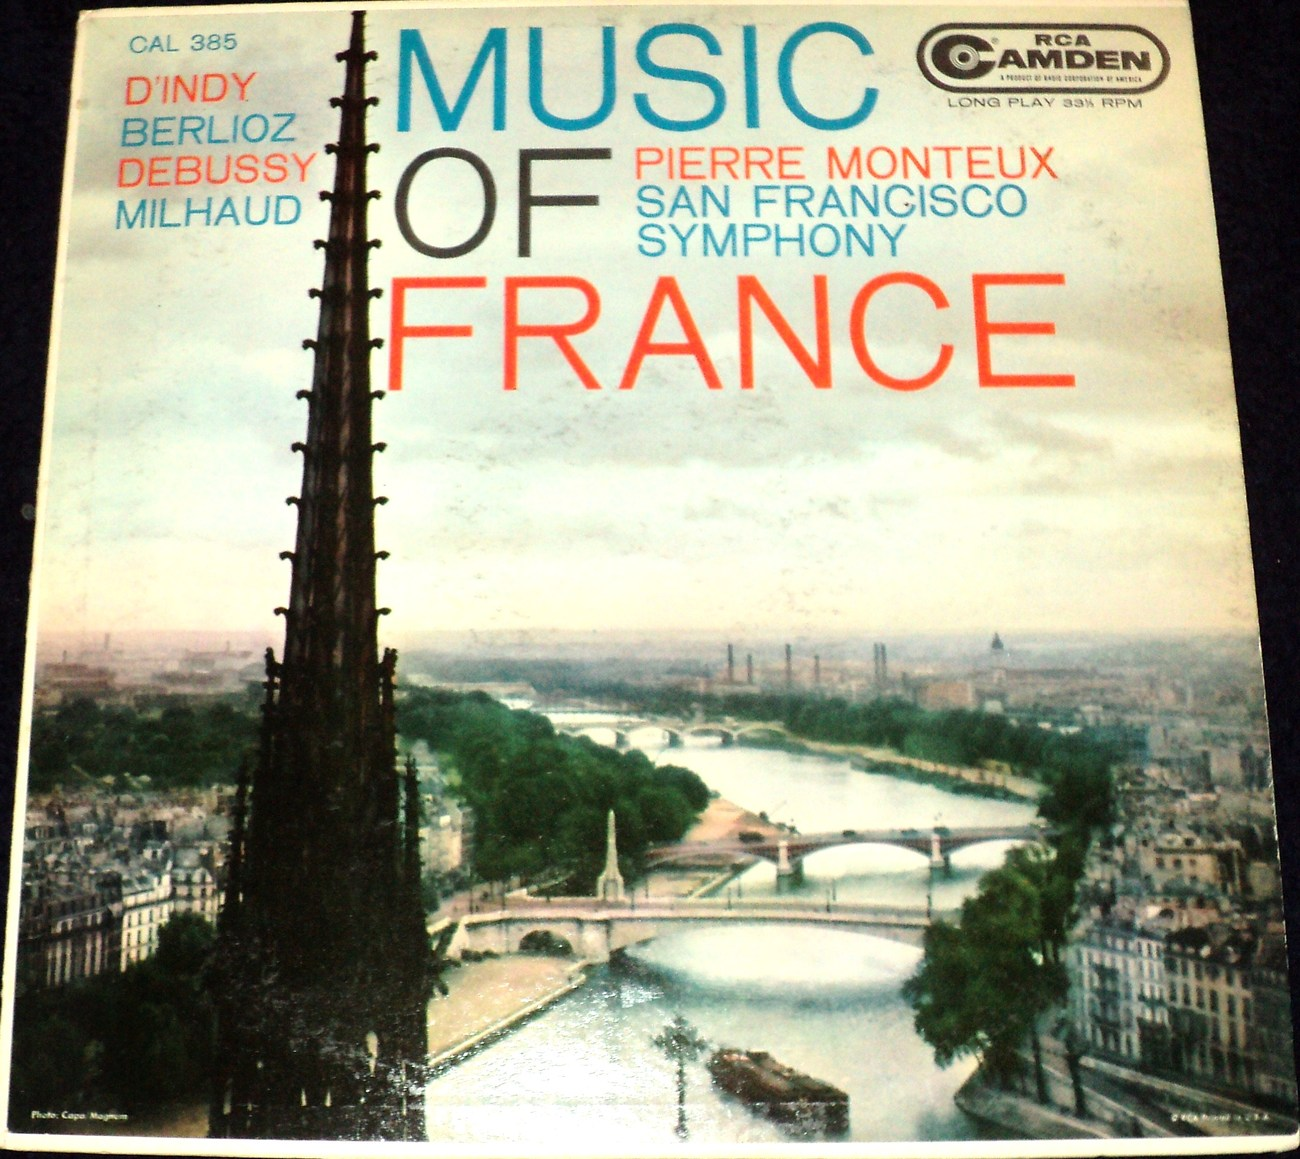 MUSIC OF FRANCE: PIERRE MONTEUX CONDUCTING THE SAN FRANCISCO SYMPHONY ORCHESTRA